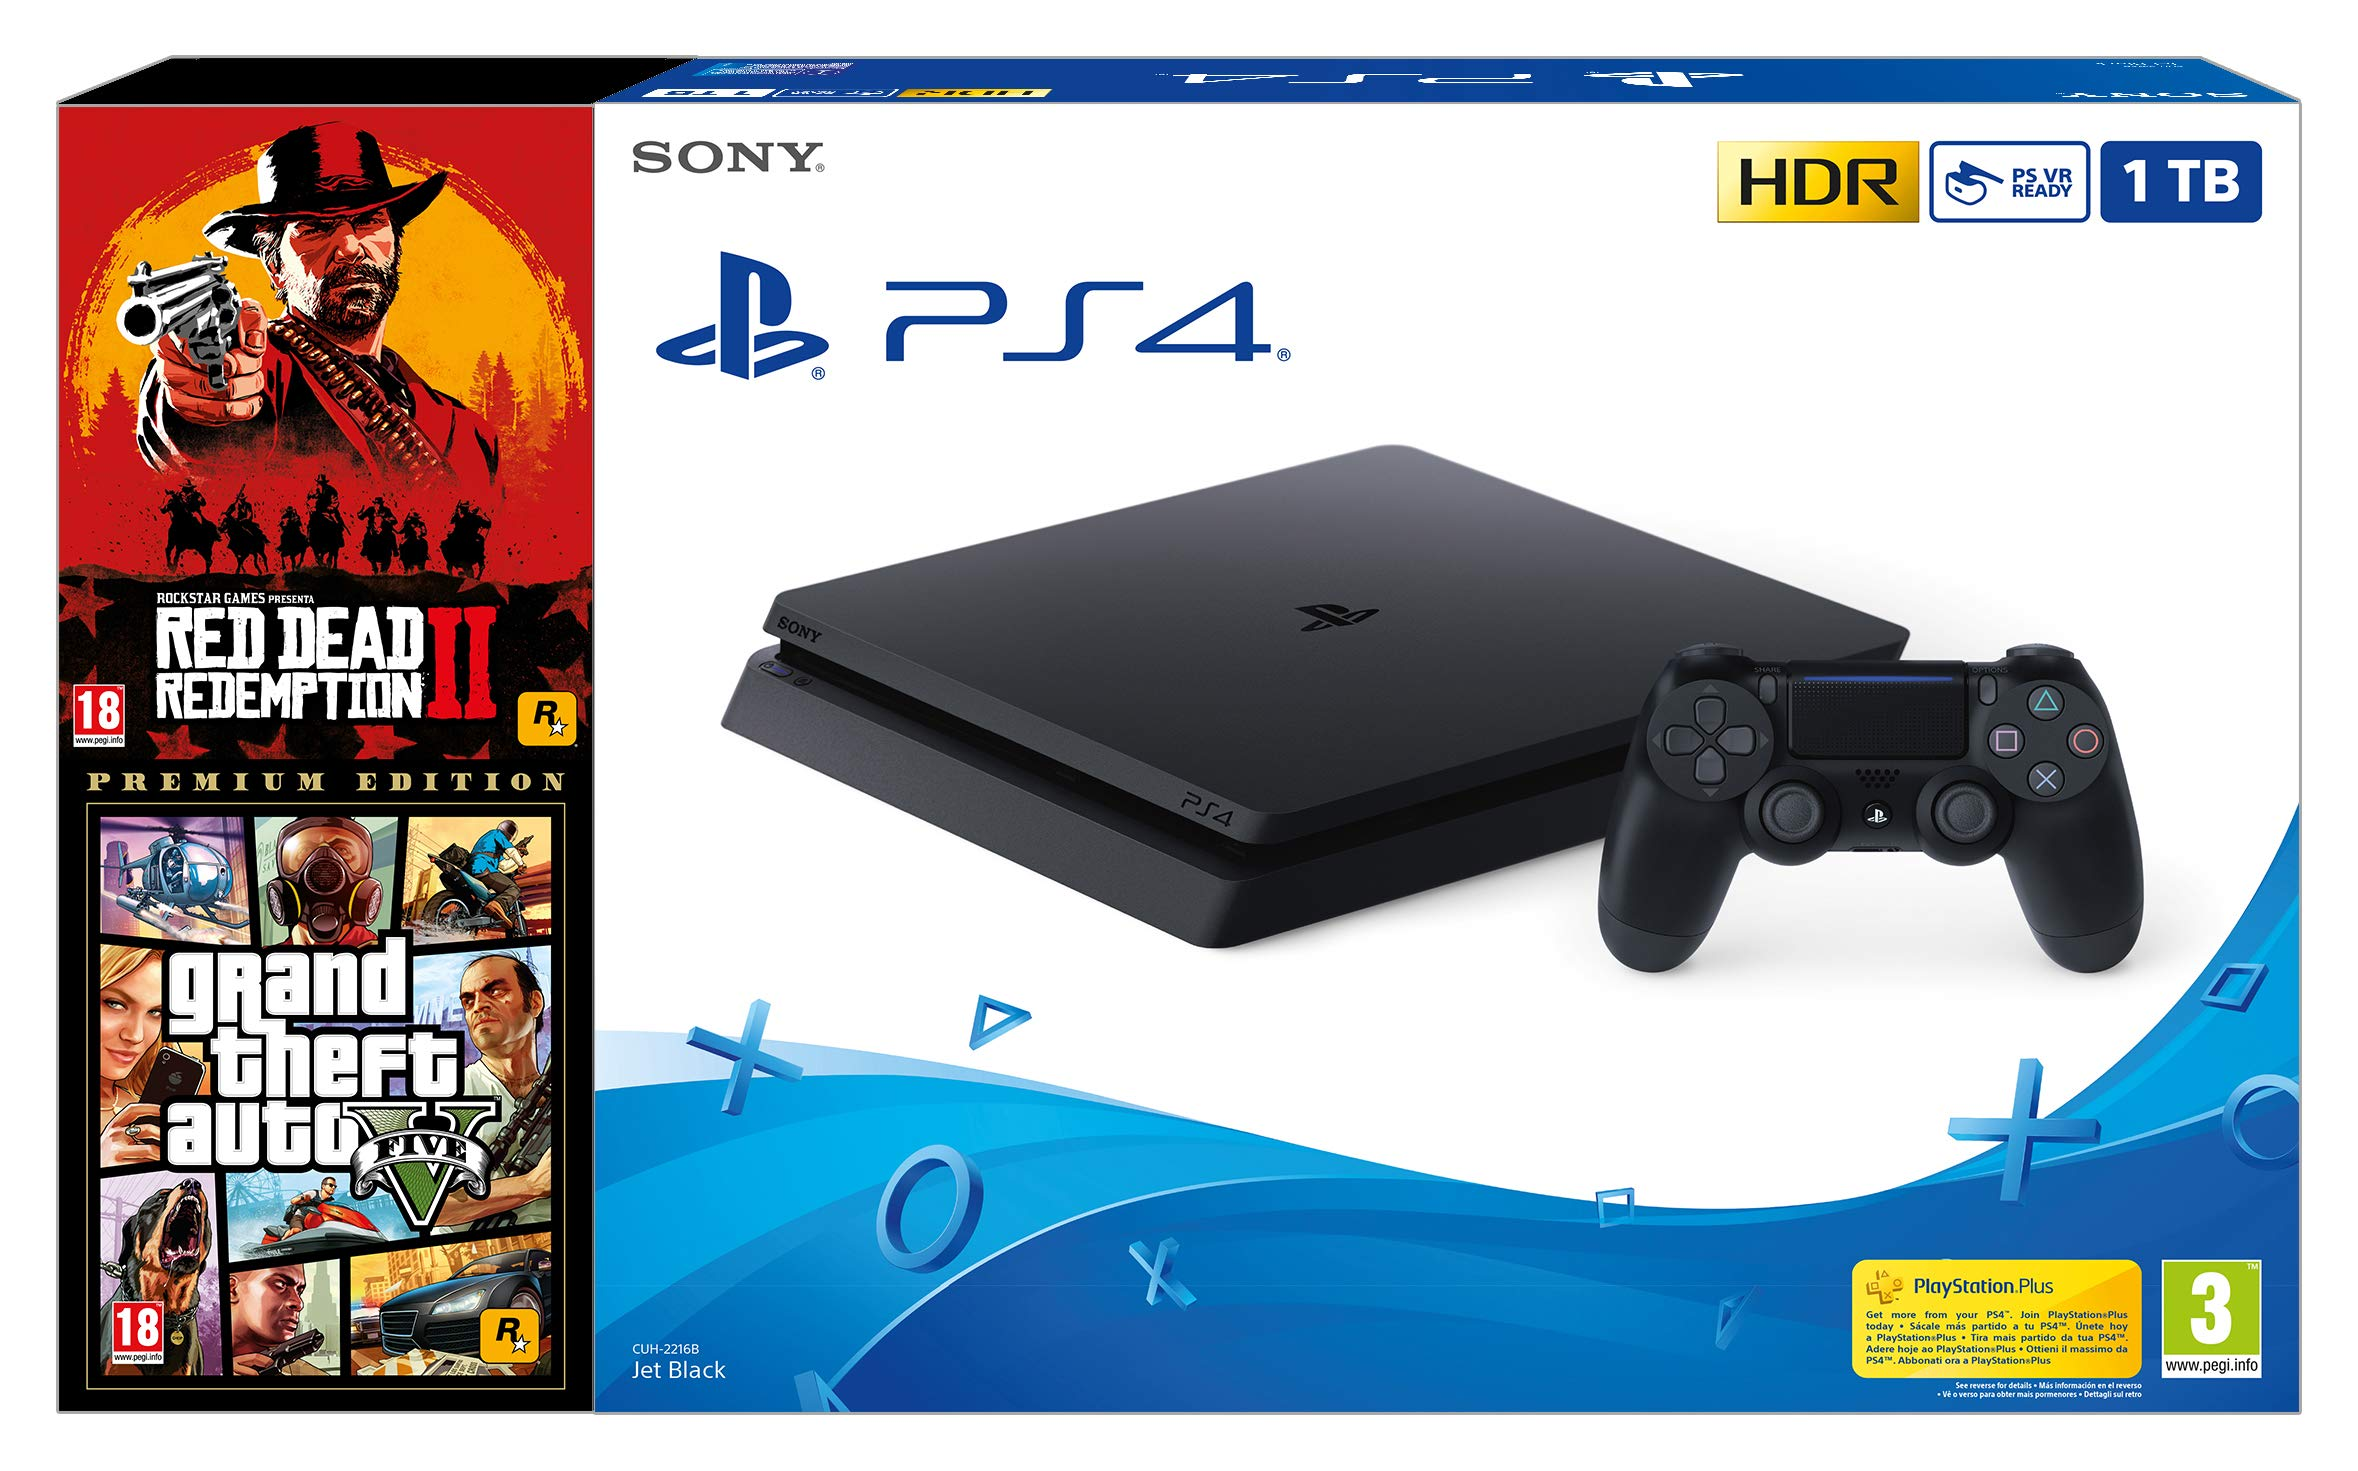 Ardistel - Bundle PS4 New F 1TB + Red Dead Redemption II + Grand Theft Auto V (Premium Edition): Sony: Amazon.es: Videojuegos